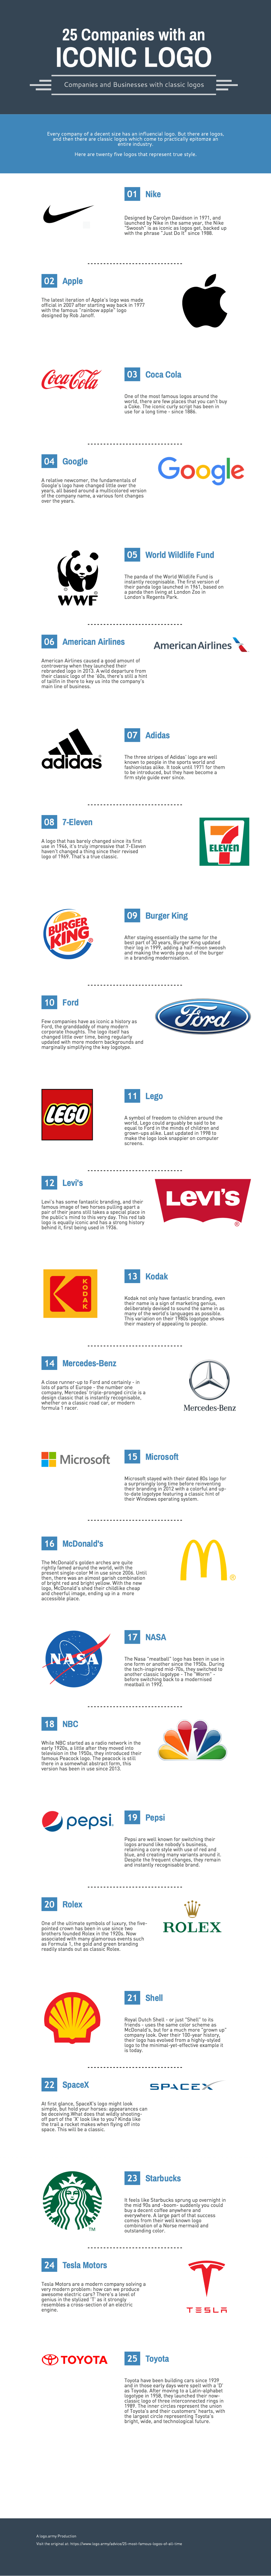 25-most-famous-logos-of-all-time